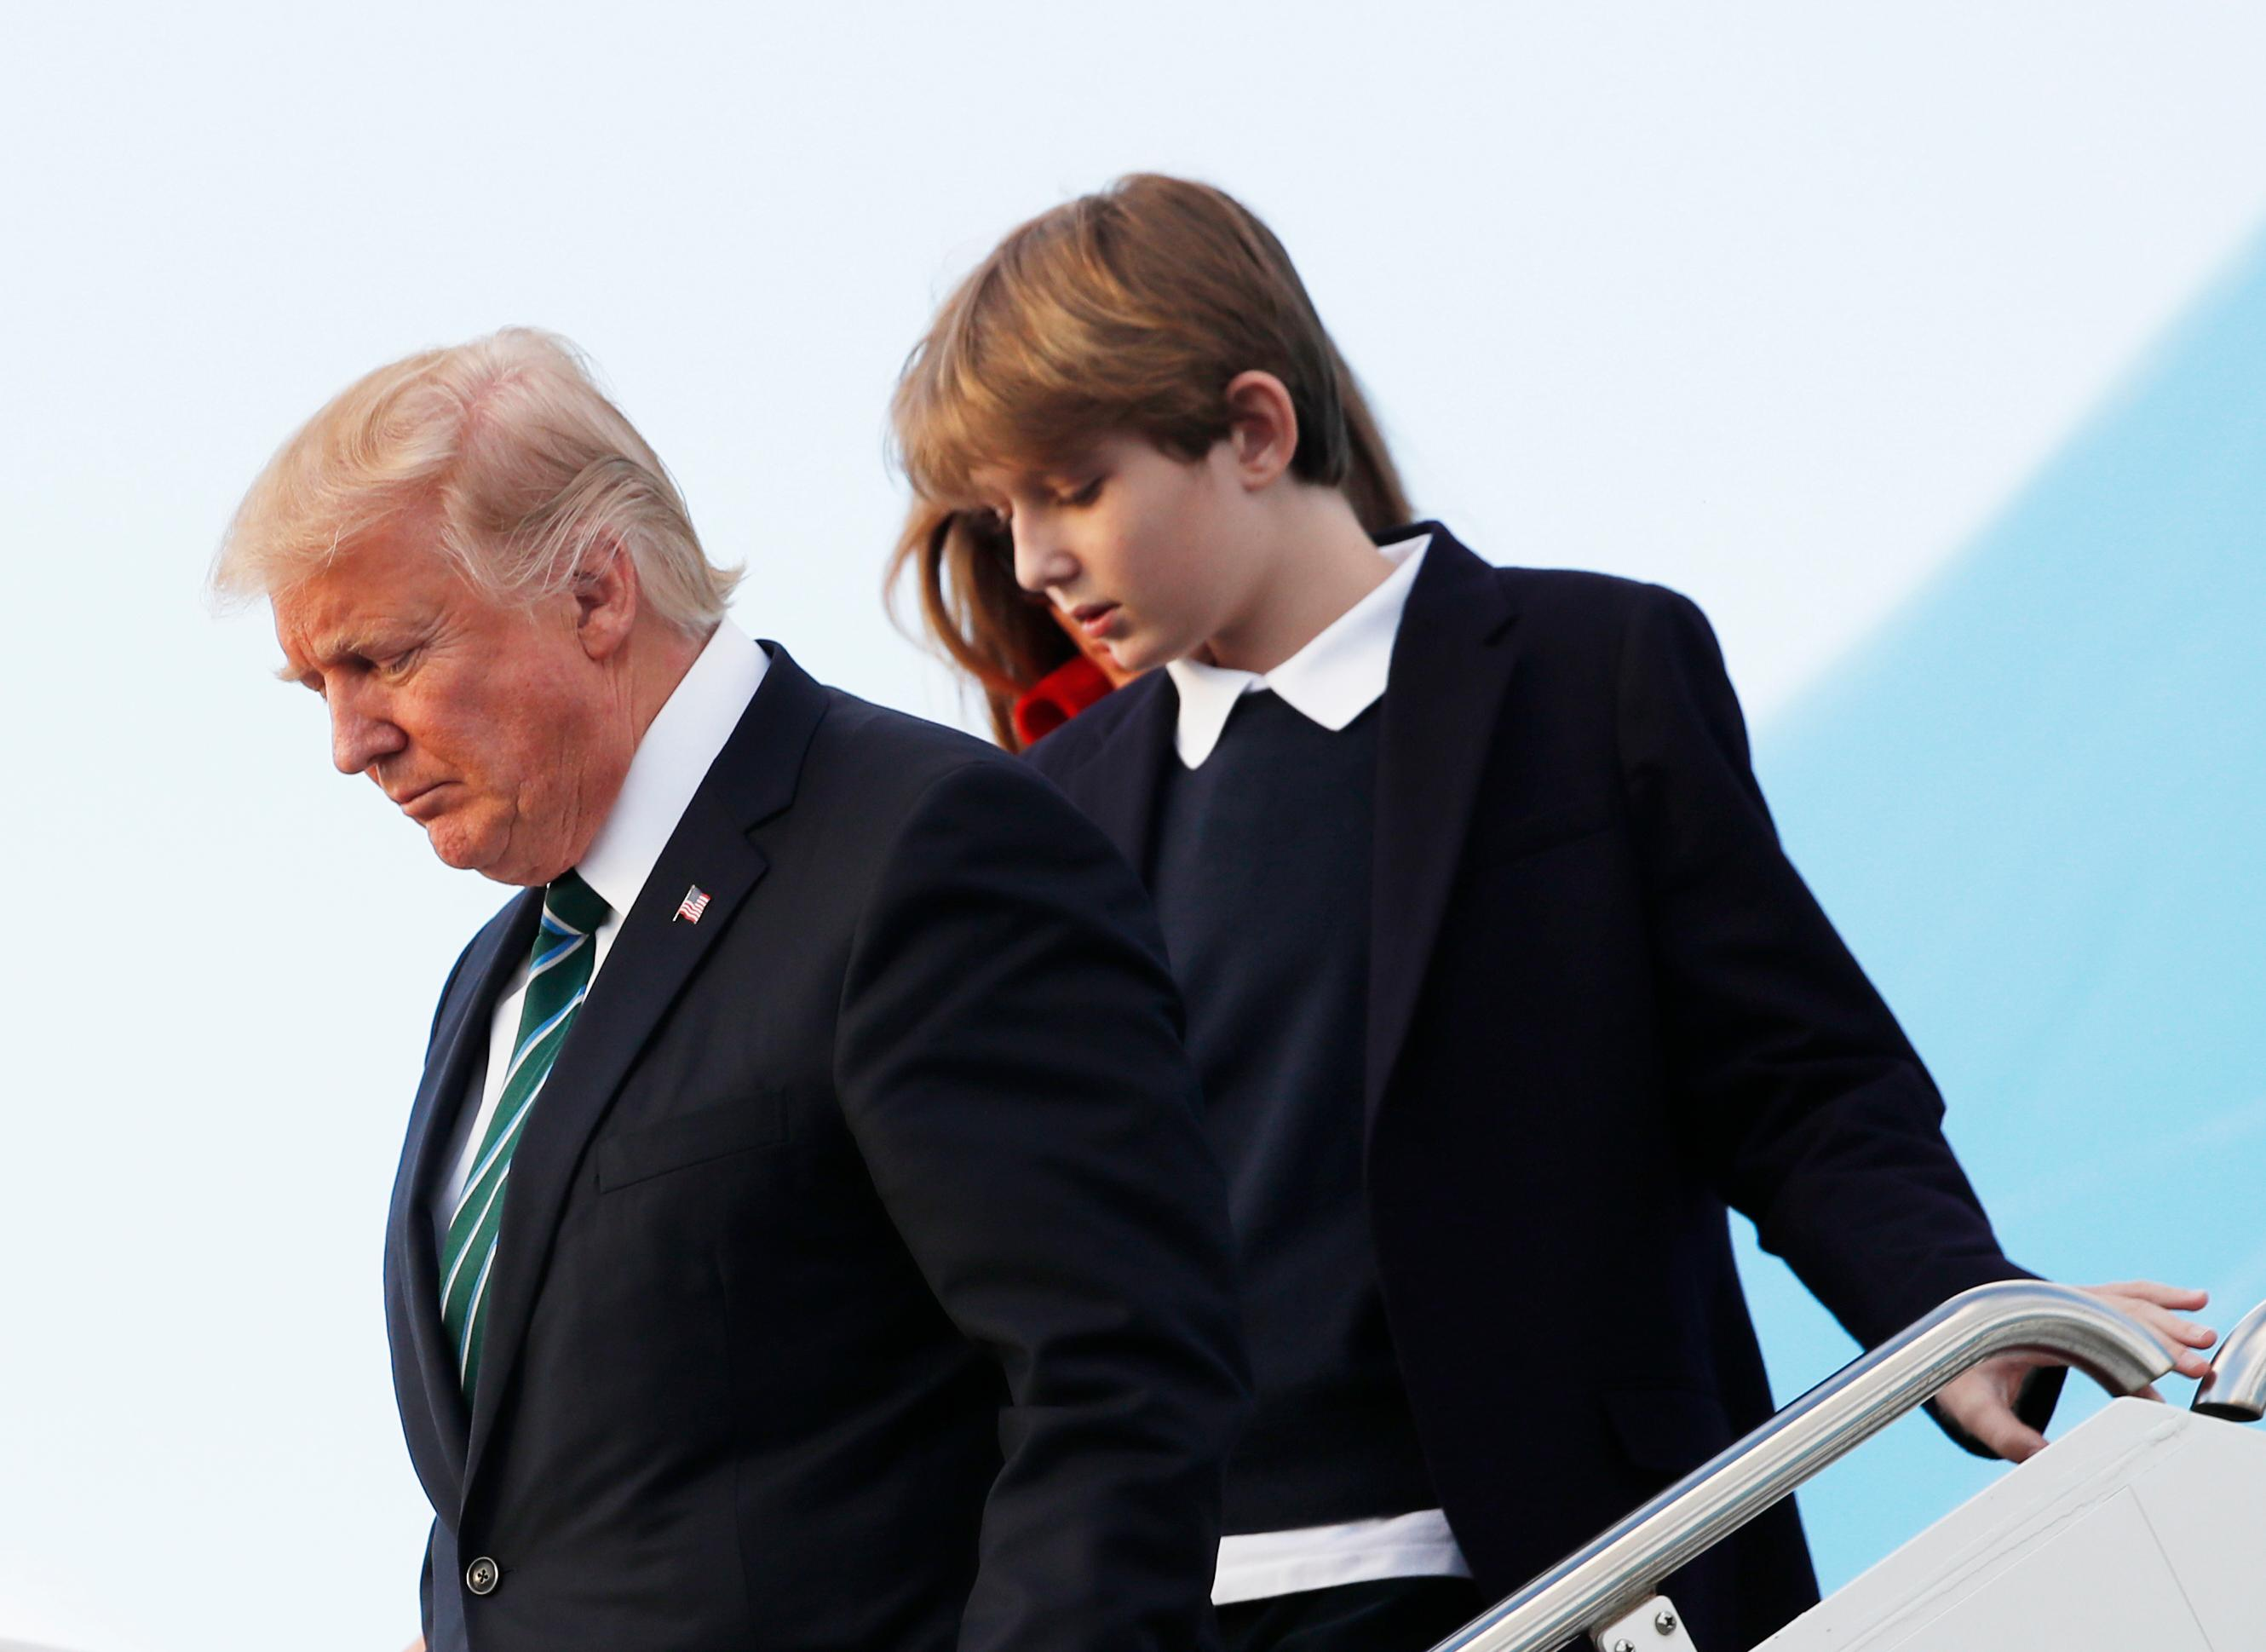 In this photo taken March 17, 2017, Barron Trump, with his father President Donald Trump and mother, first lady Melania Trump, disembark from Air Force One upon arrival at Palm Beach International Airport in West Palm Beach, Fla. First lady Melania Trump has announced that her son, Barron, will attend a private Episcopal school in Maryland beginning this fall. (AP Photo/Manuel Balce Ceneta)